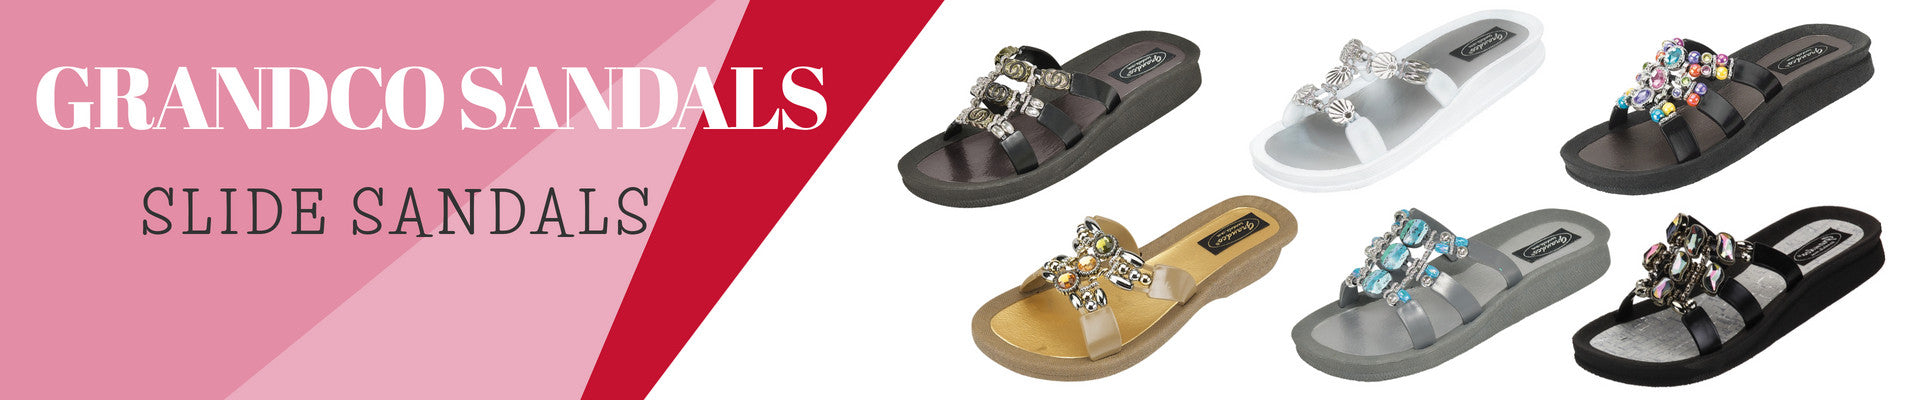 Slide Sandals by Grandco Sandals. Shop The Accessory Barn!